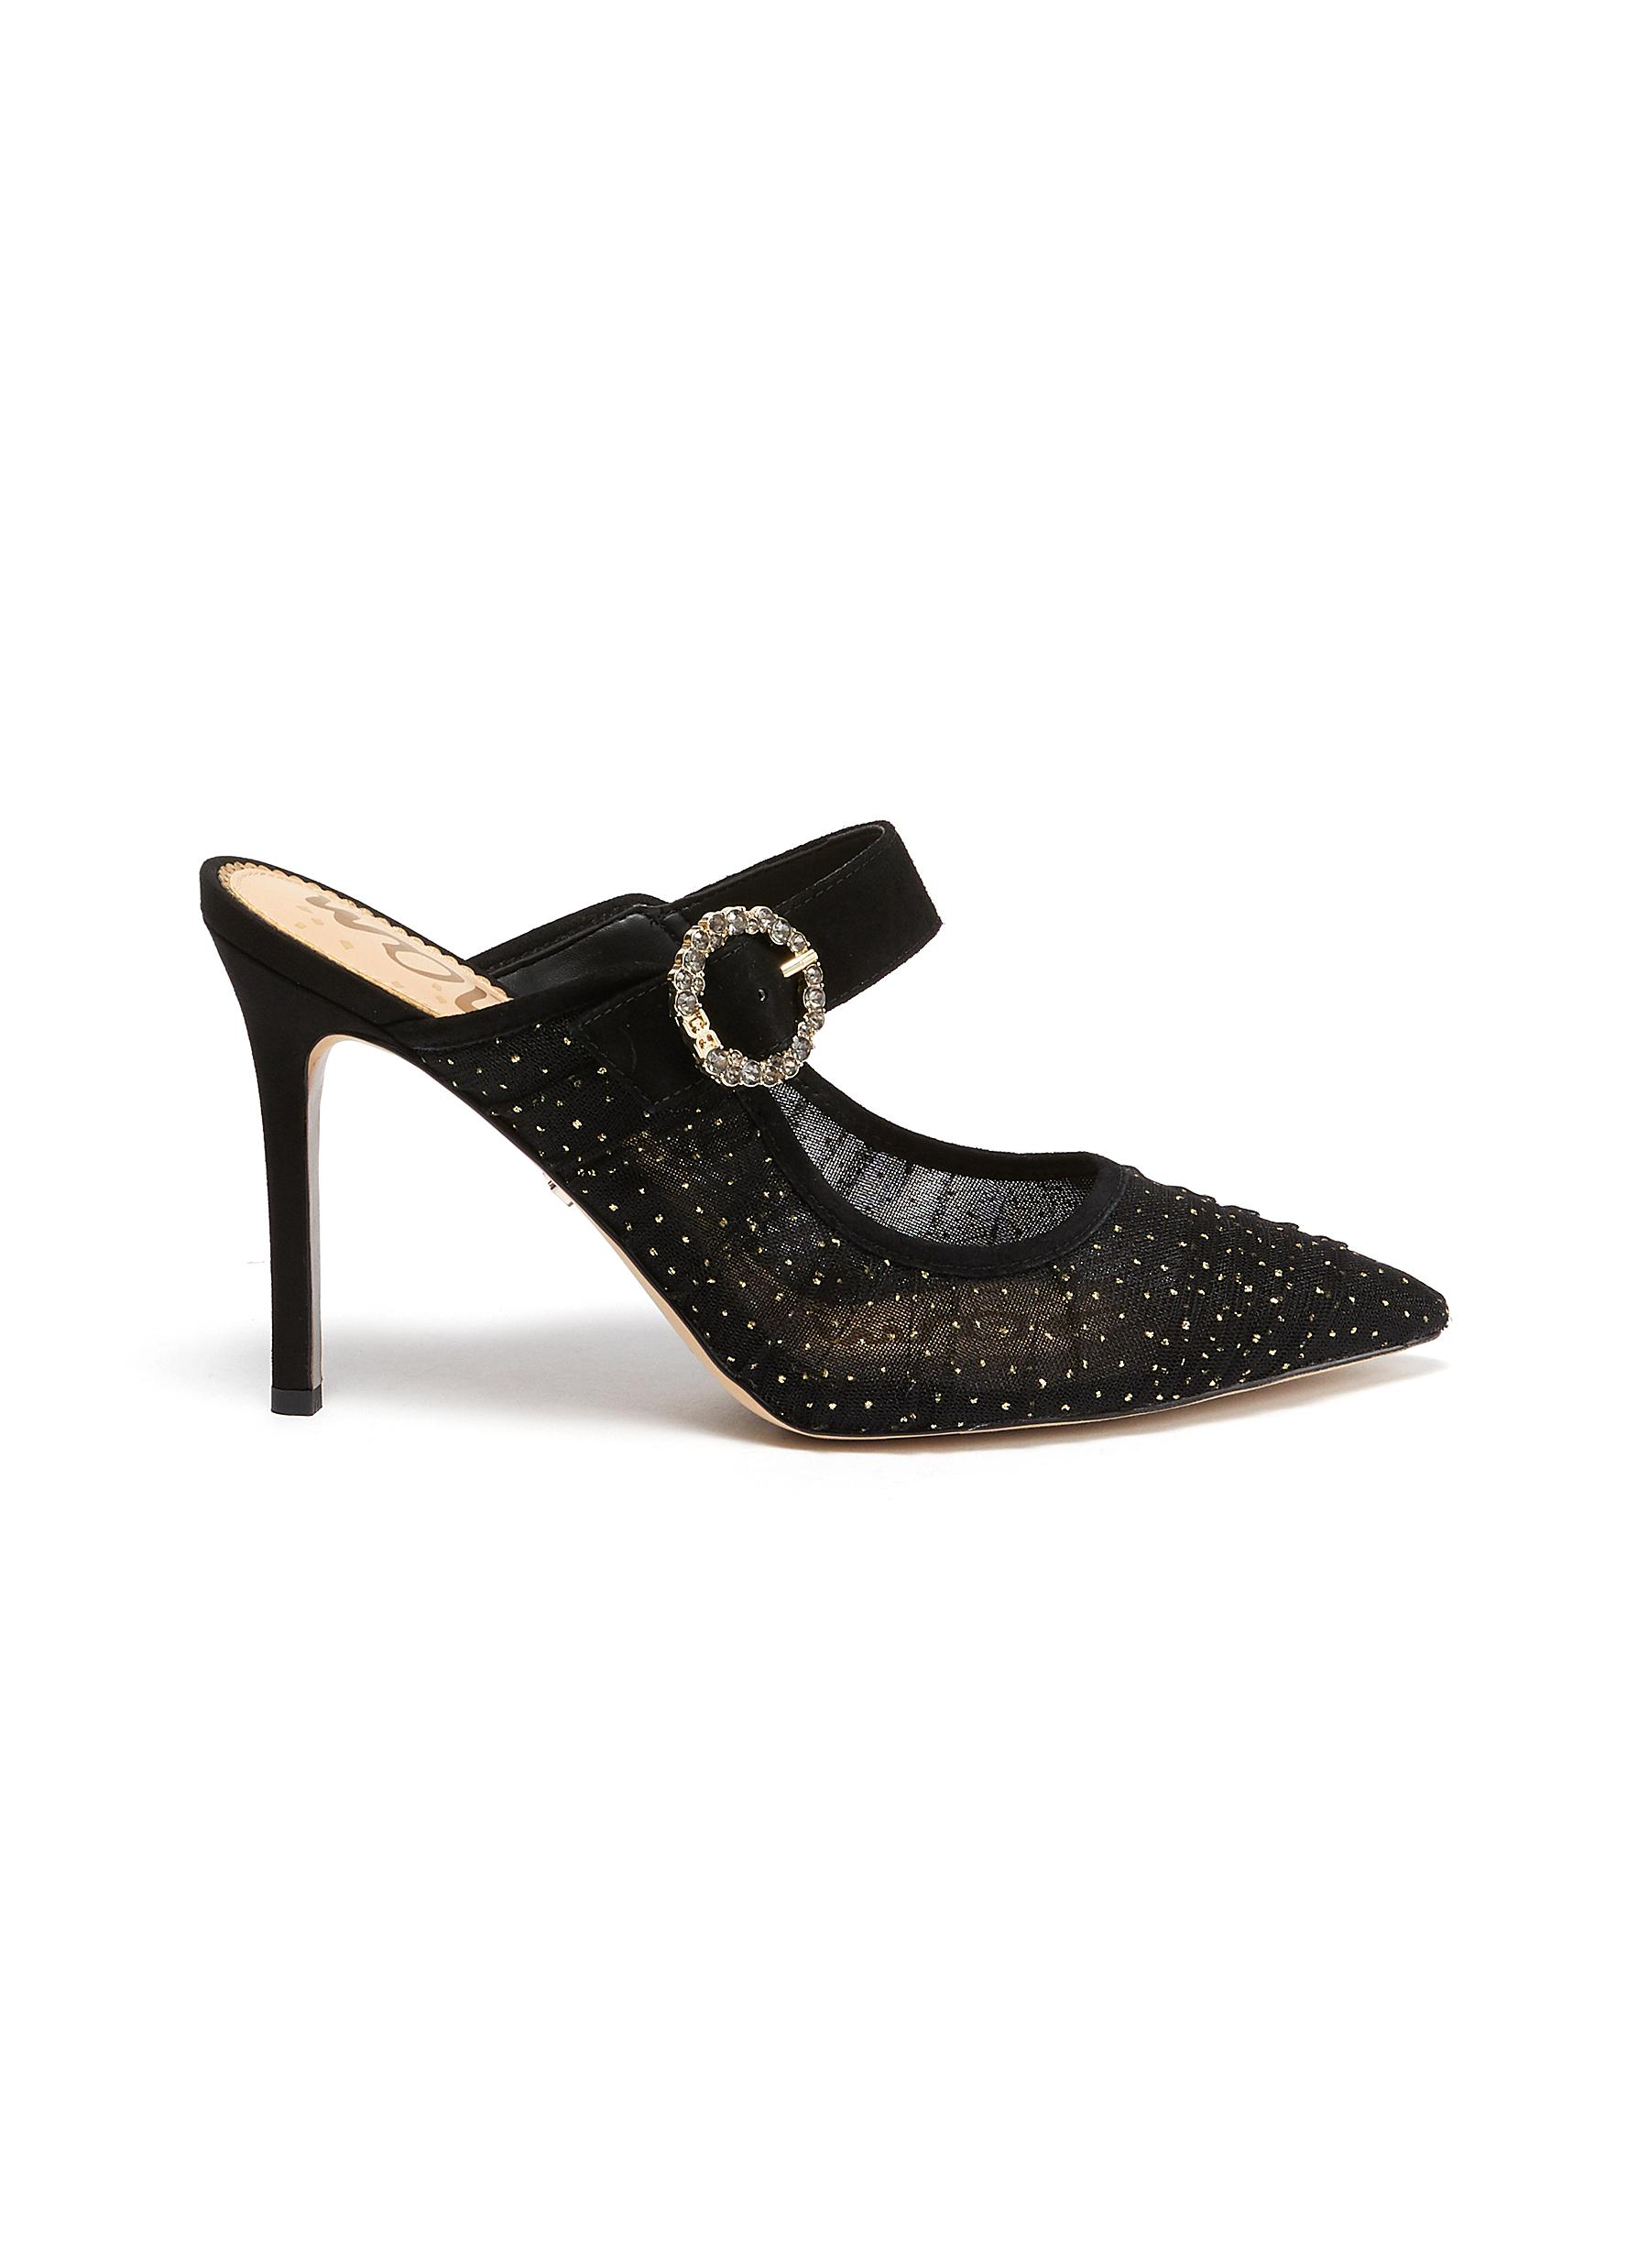 Sam Edelman Mules 'Halo' strap buckle embellished mules